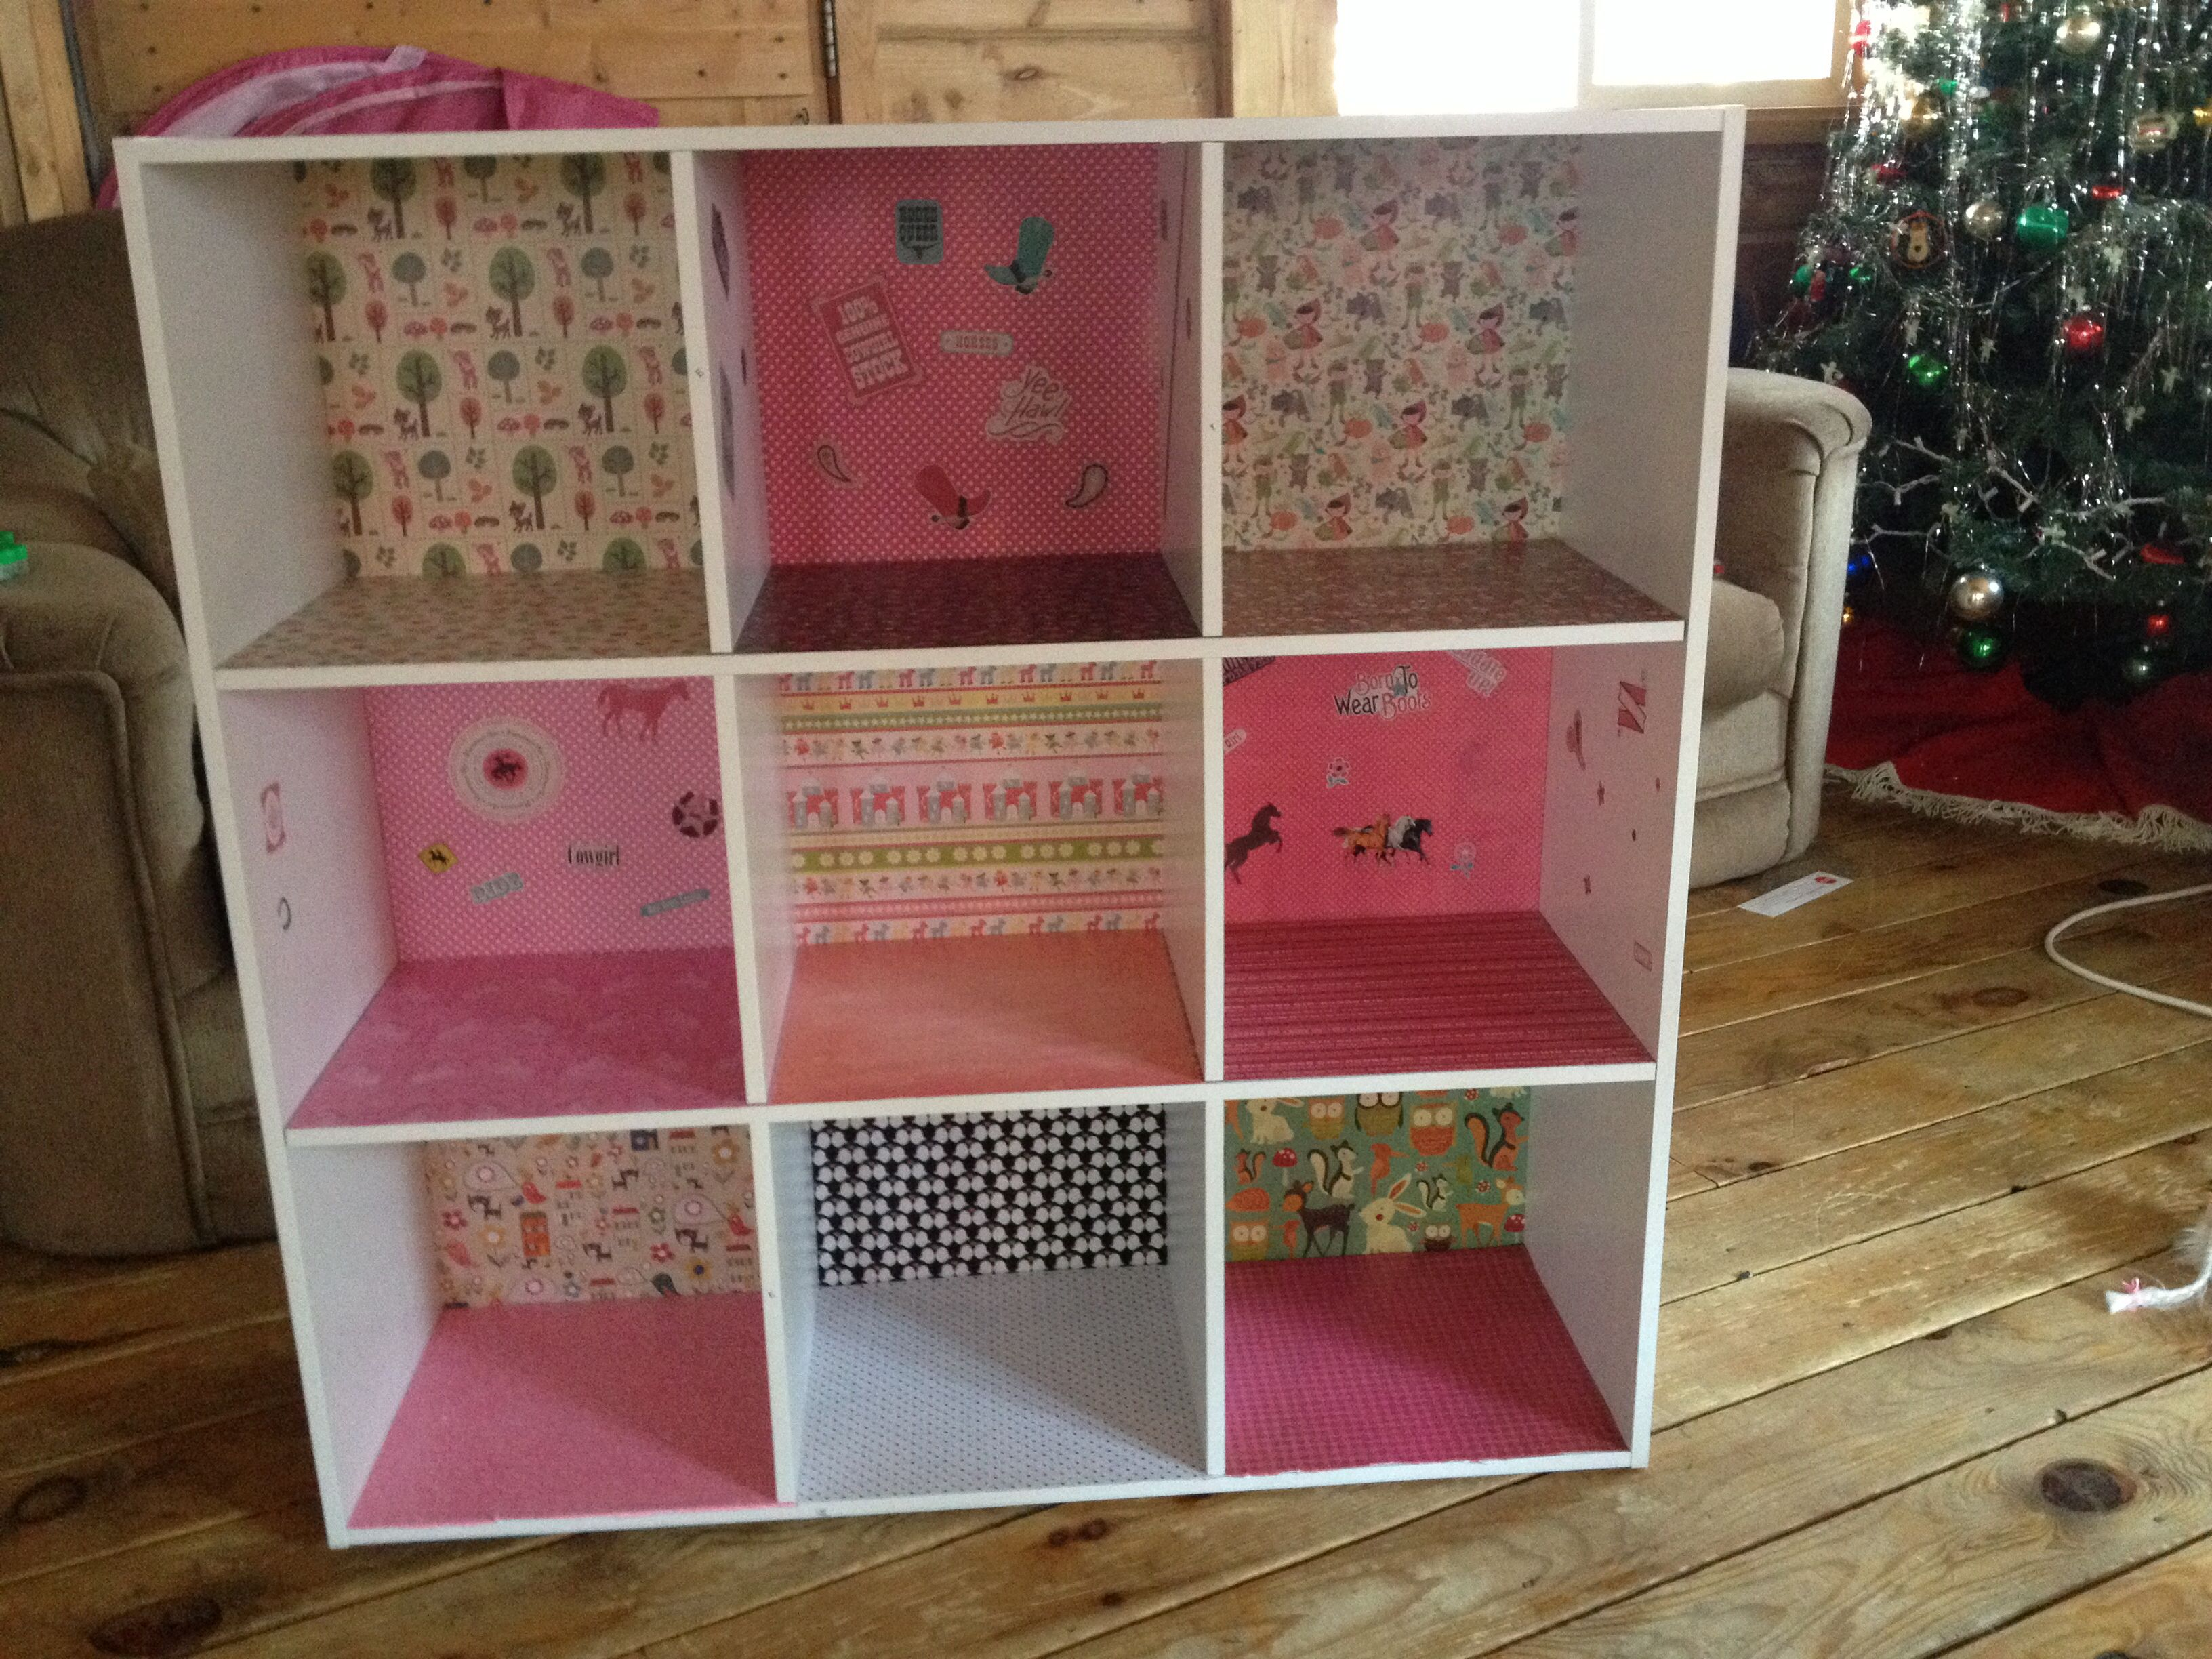 DIY Dollhouse Menards 9 Cubby Bookshelf Assembly Required 20 18 12x12 Pieces Of Scrapbook Paper Stickers 275 And Mod Podge 7